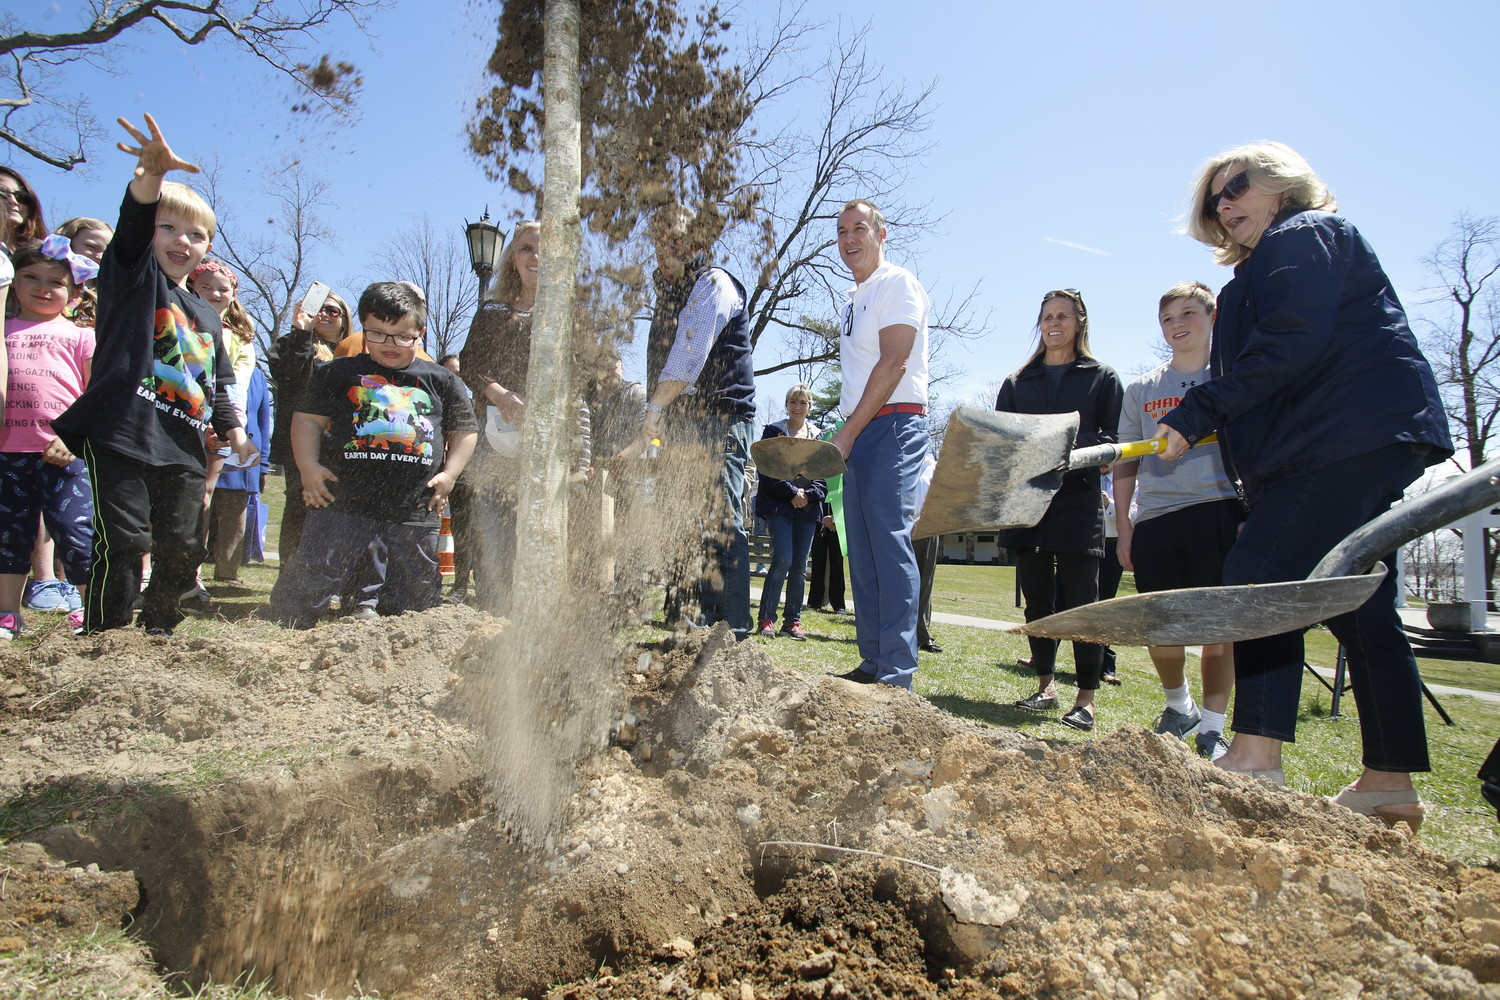 Children and elected officials helped to plant a white oak sapling in Morgan Memorial Park on Earth Day in honor of Marguerite Suozzi, a former first lady of Glen Cove, the mother of U.S. Rep. Tom Suozzi and a longtime supporter of the park.